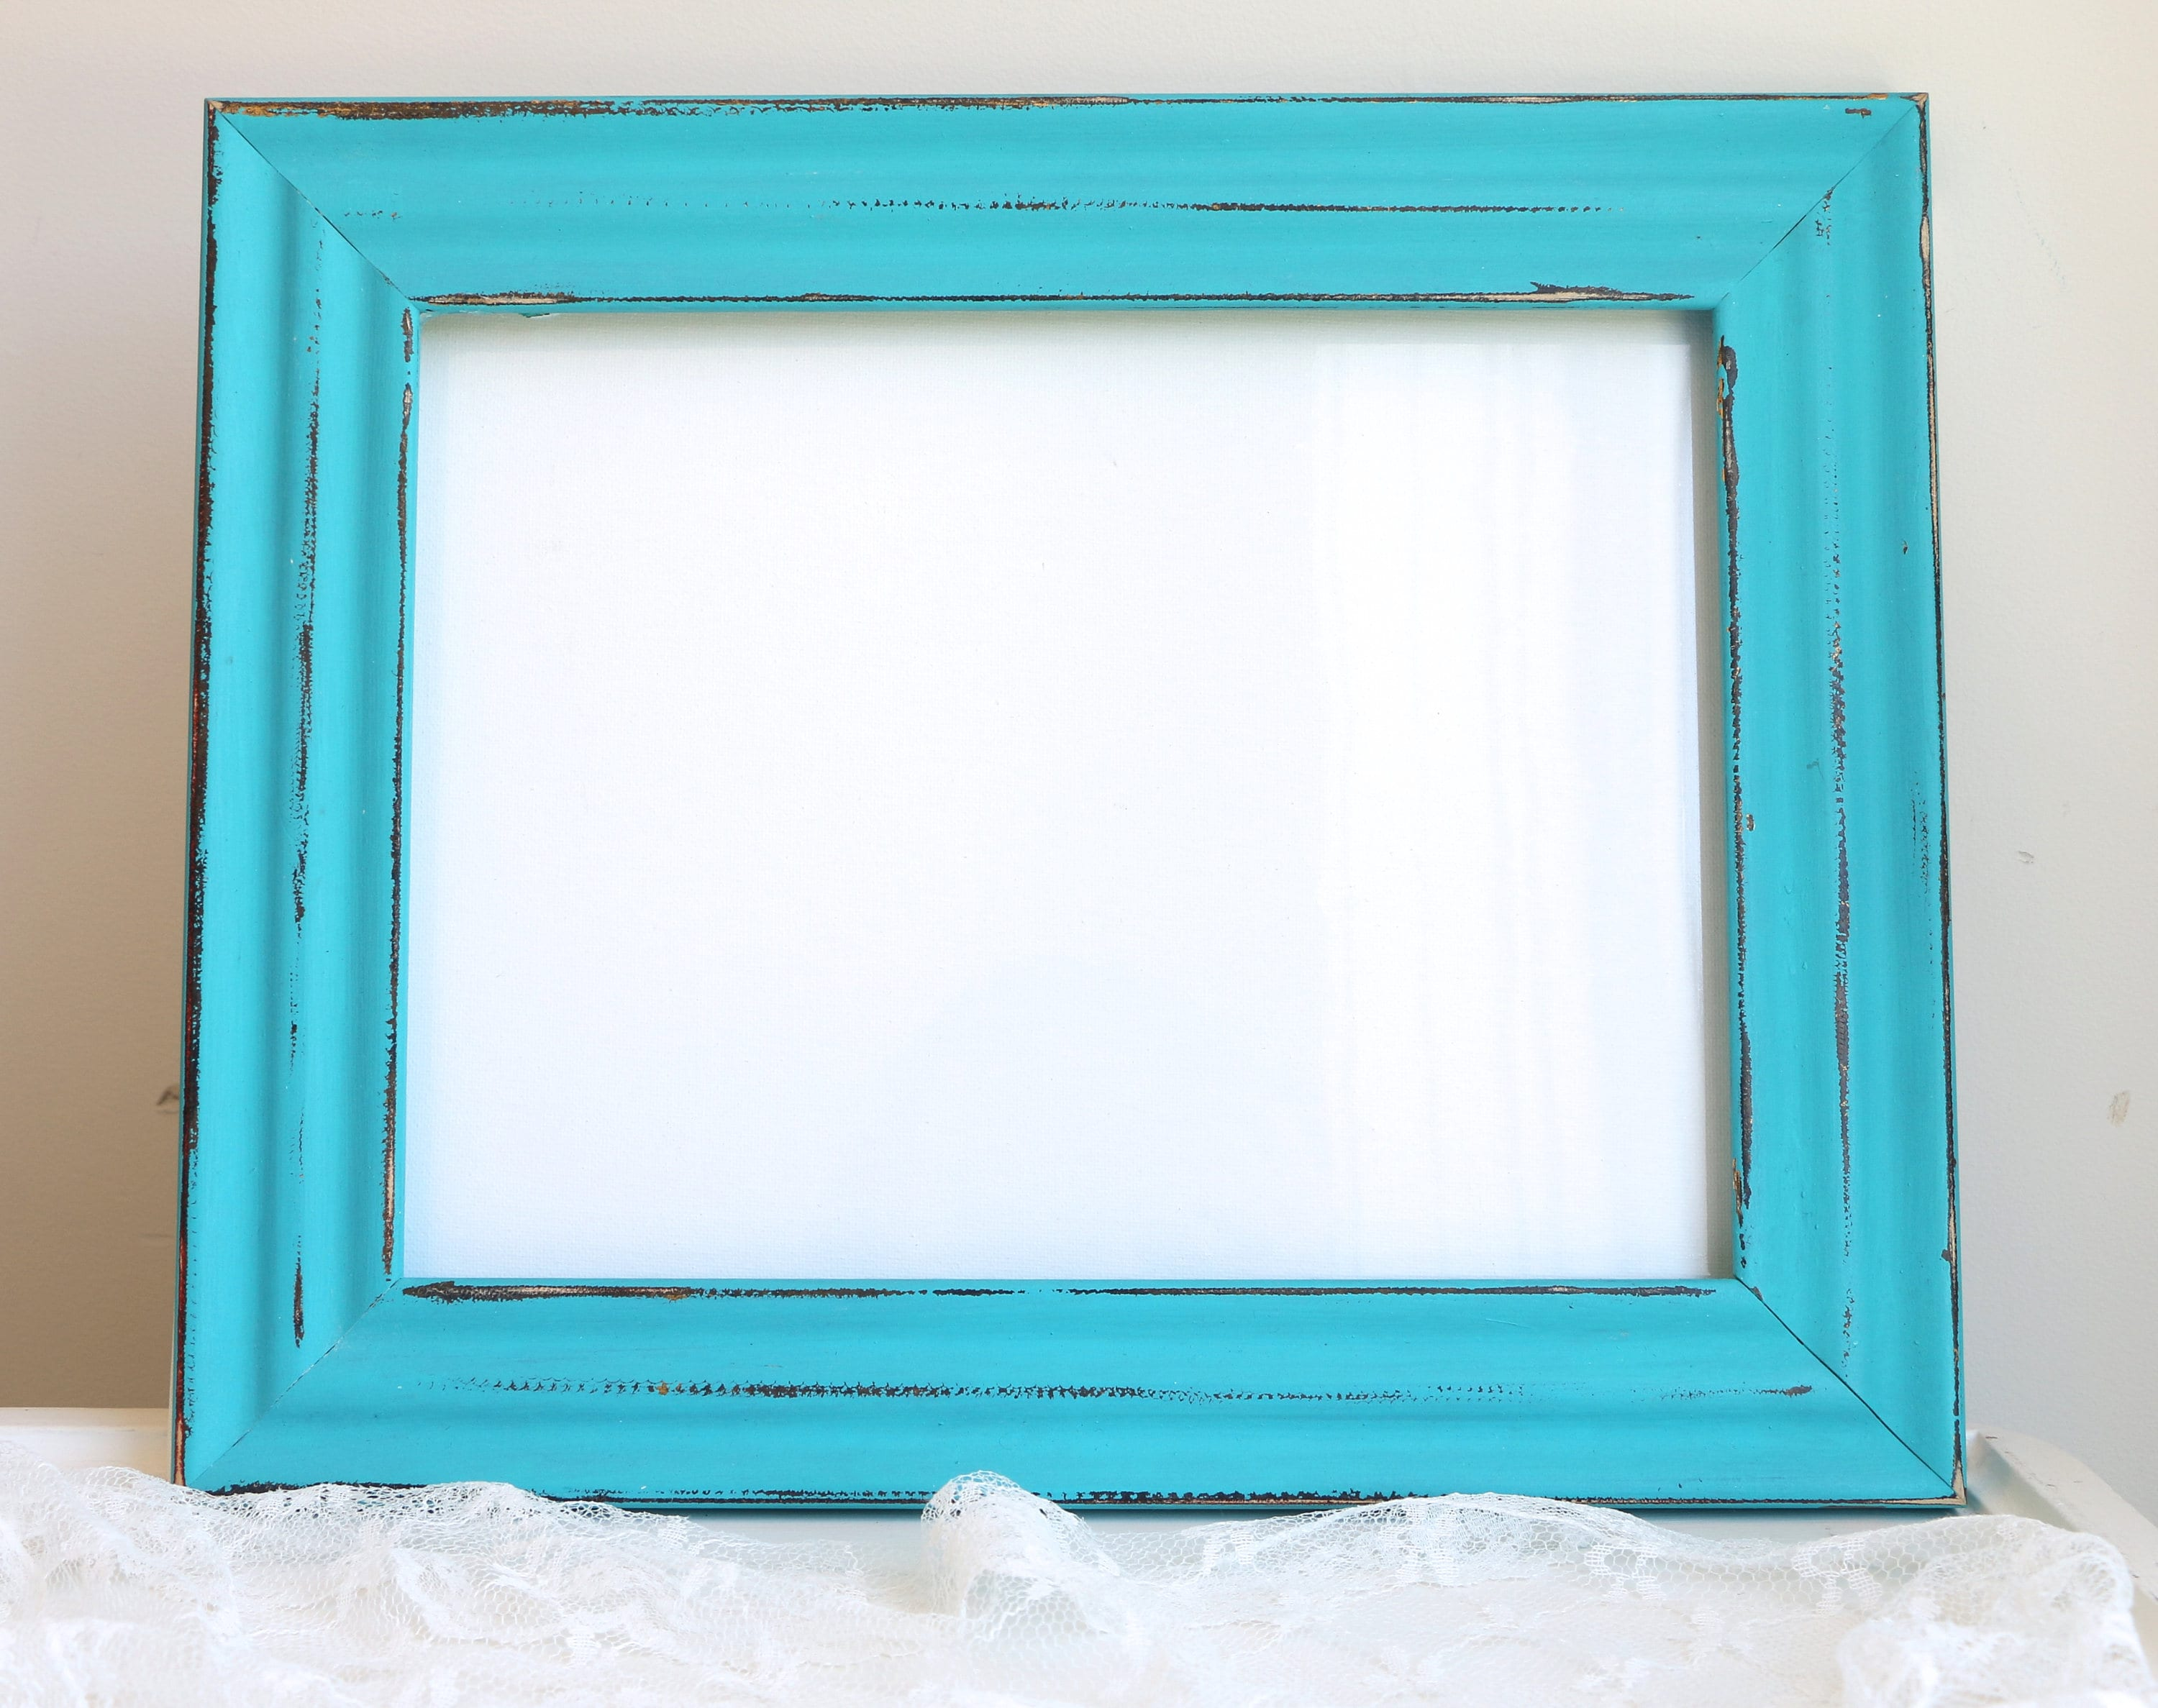 Teal azul marco cuadro marco Shabby Chic marco rustico madera ...